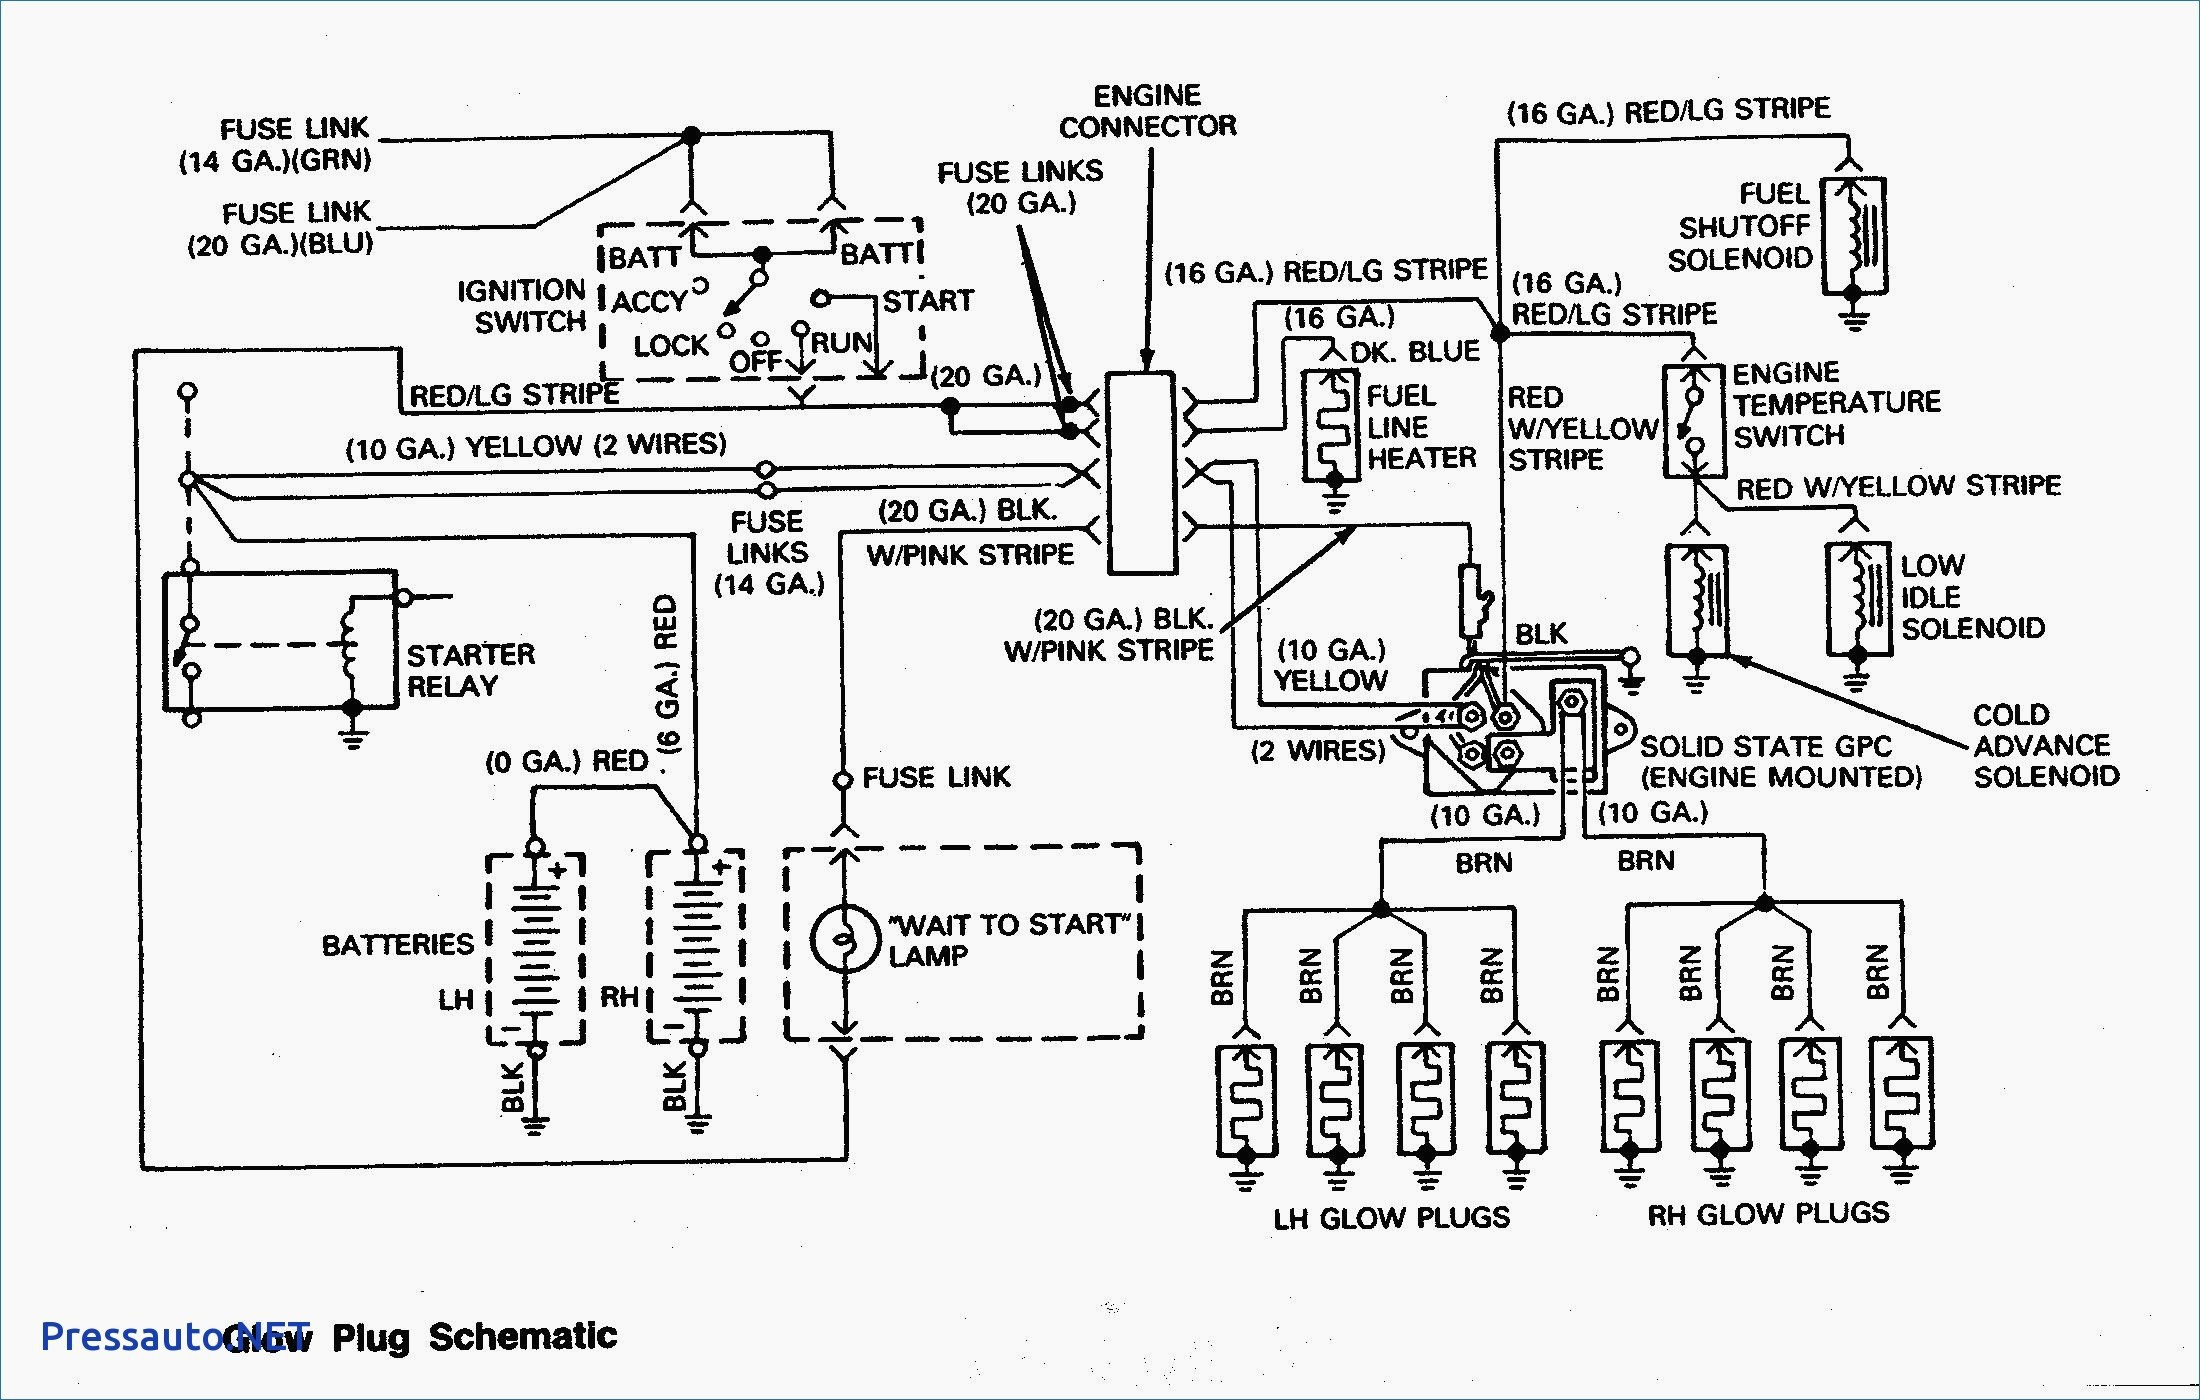 6 0 powerstroke ficm wiring diagram 6 0 powerstroke wiring harness diagram awesome lb7 glow plug relay wiring diagram 8b ford 7 3 injector wiring harness diagram on 1996 7 3 powerstroke